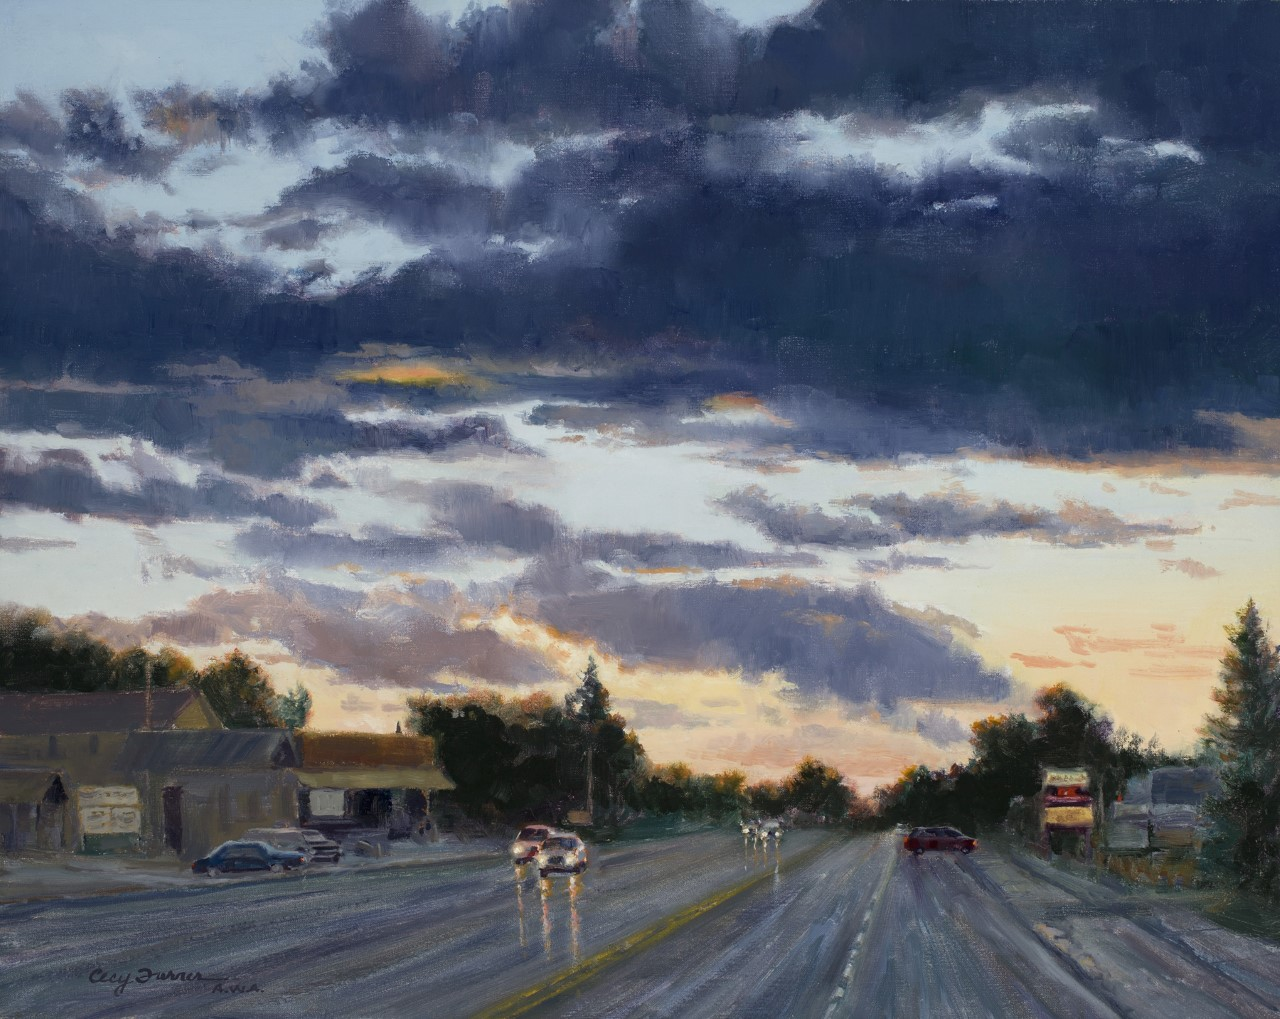 Cecy Turner - A Night Out in Pinetop